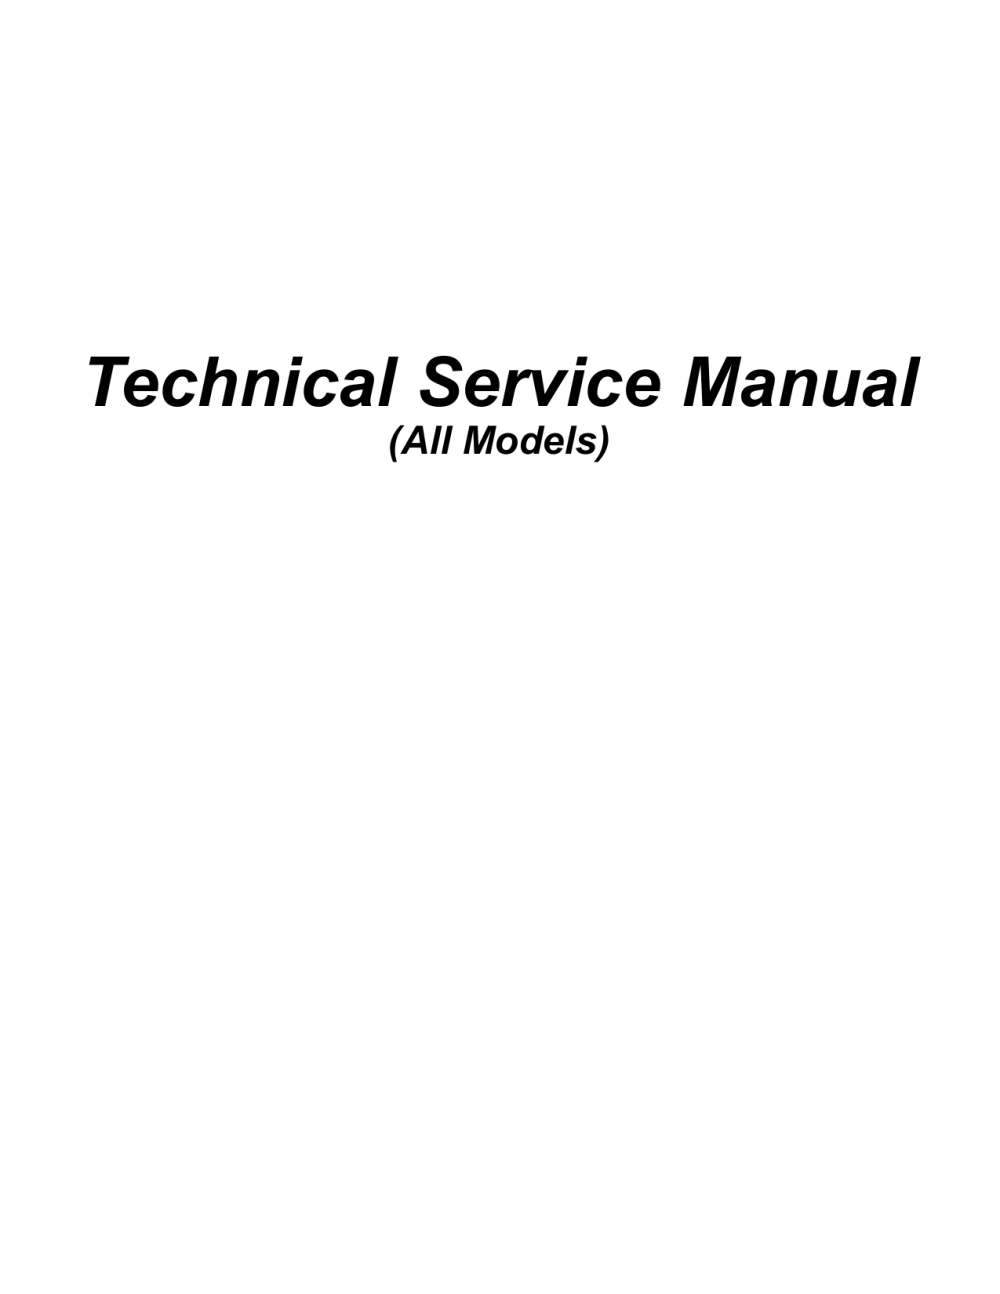 medium resolution of pdf for true freezer t 72f manual